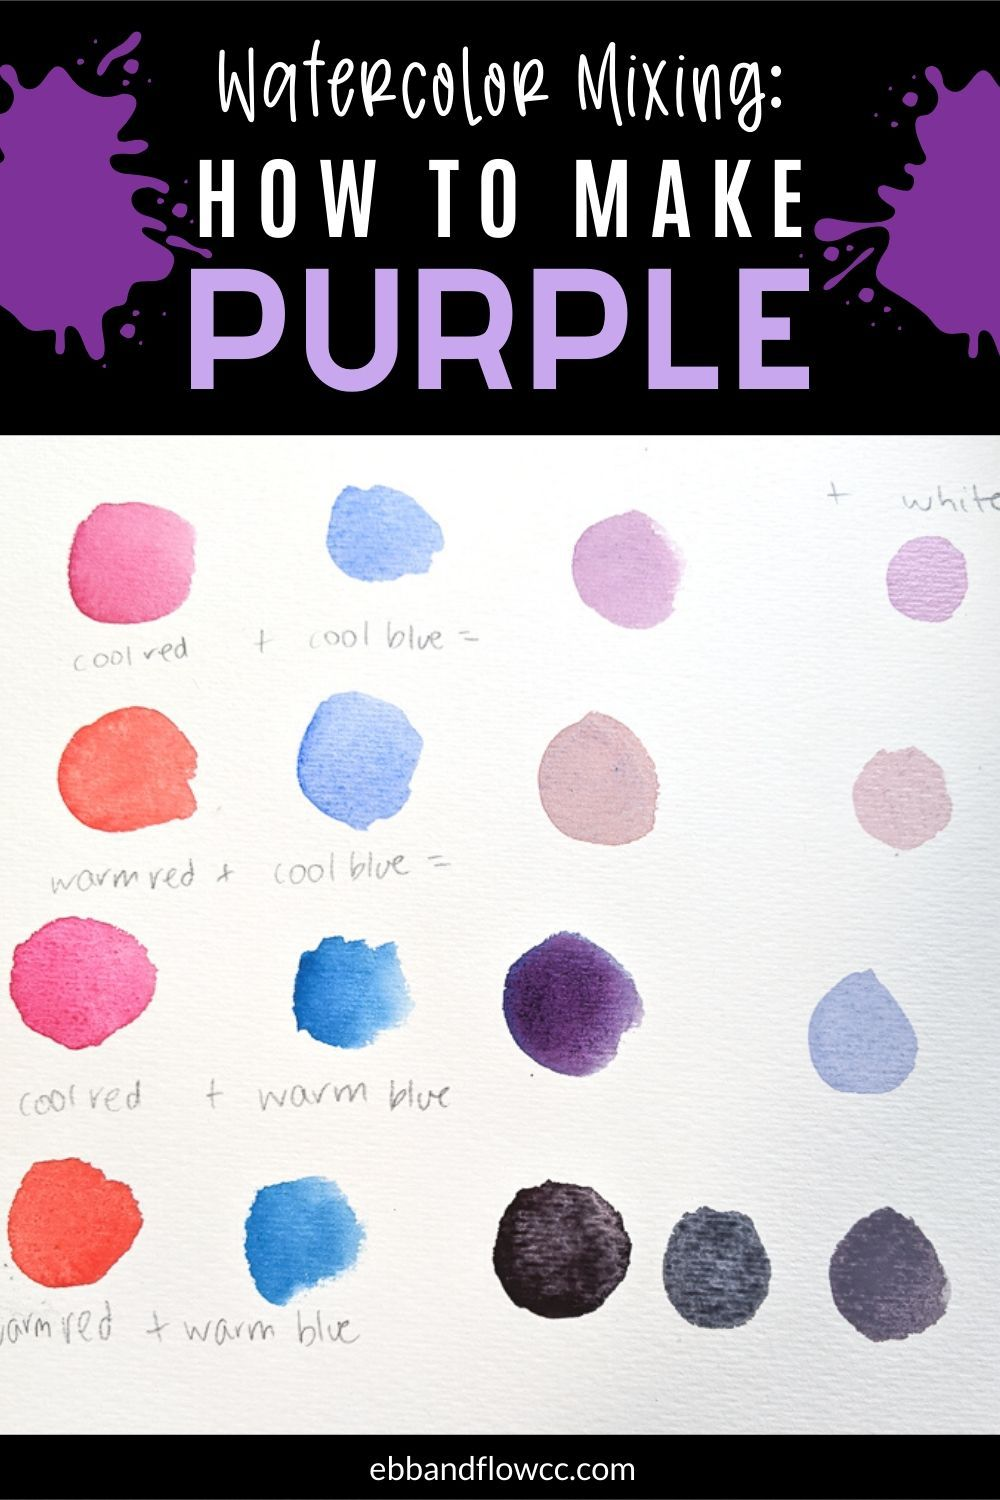 How To Mix Purple Watercolor Purple Watercolor Watercolor Mixing How To Make Purple